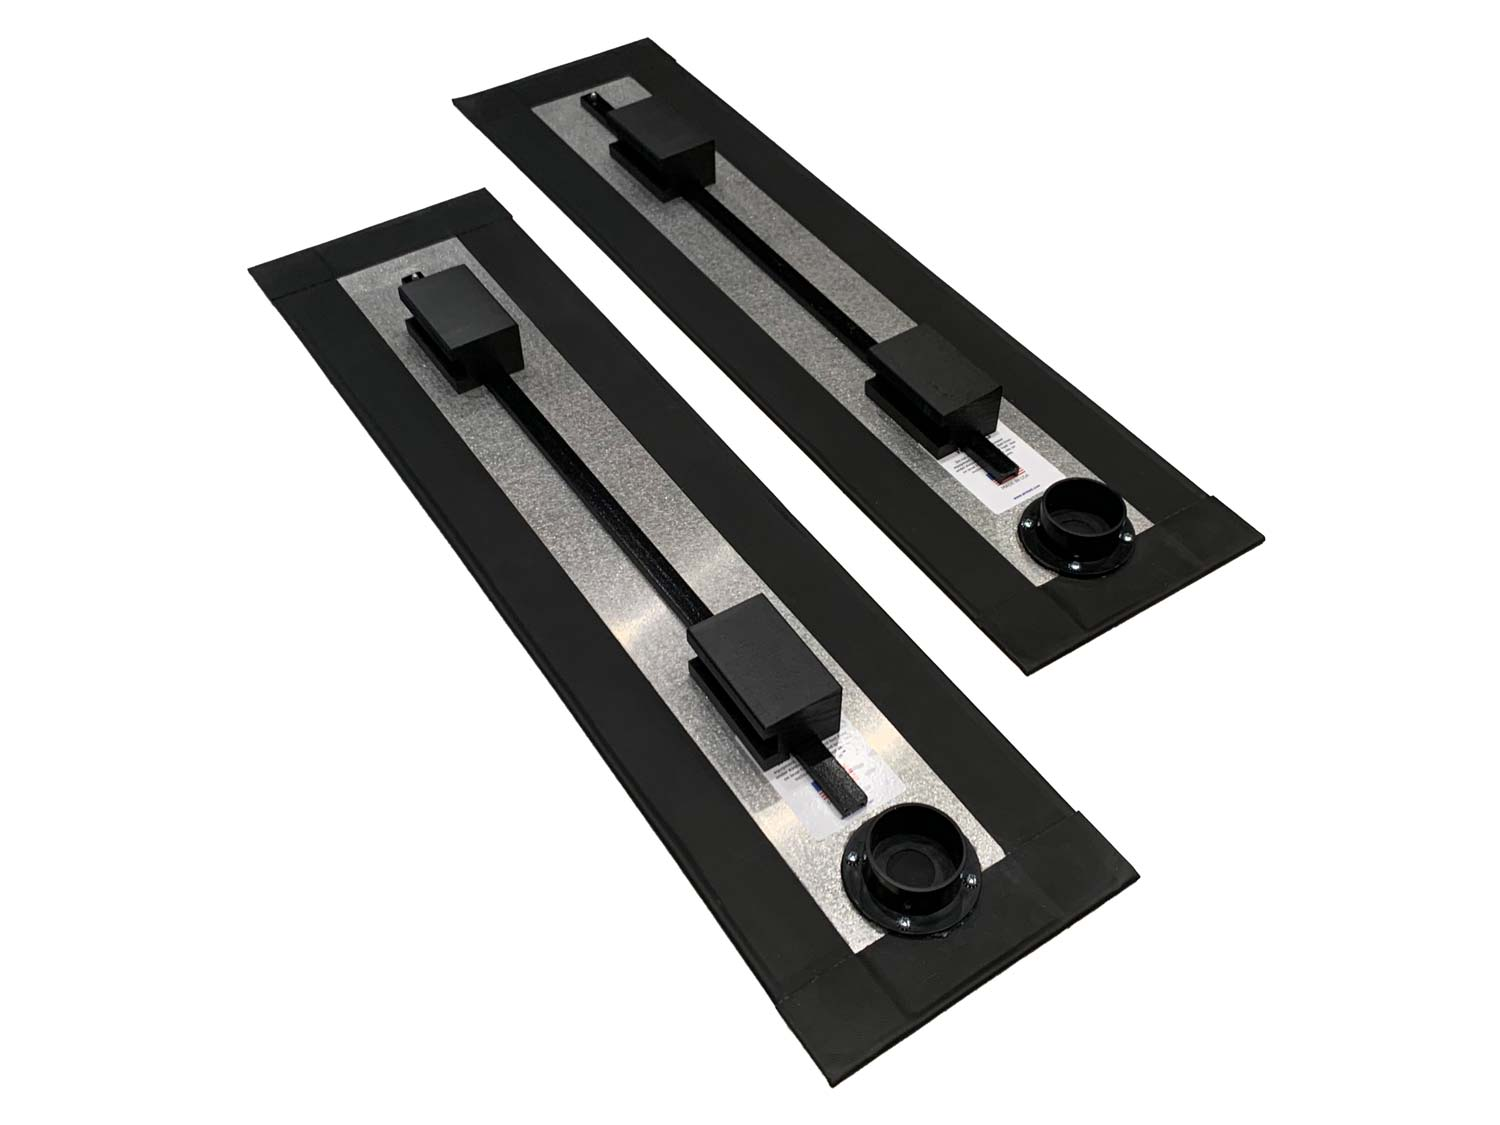 Airsled Spacer kit air beams with spacers added